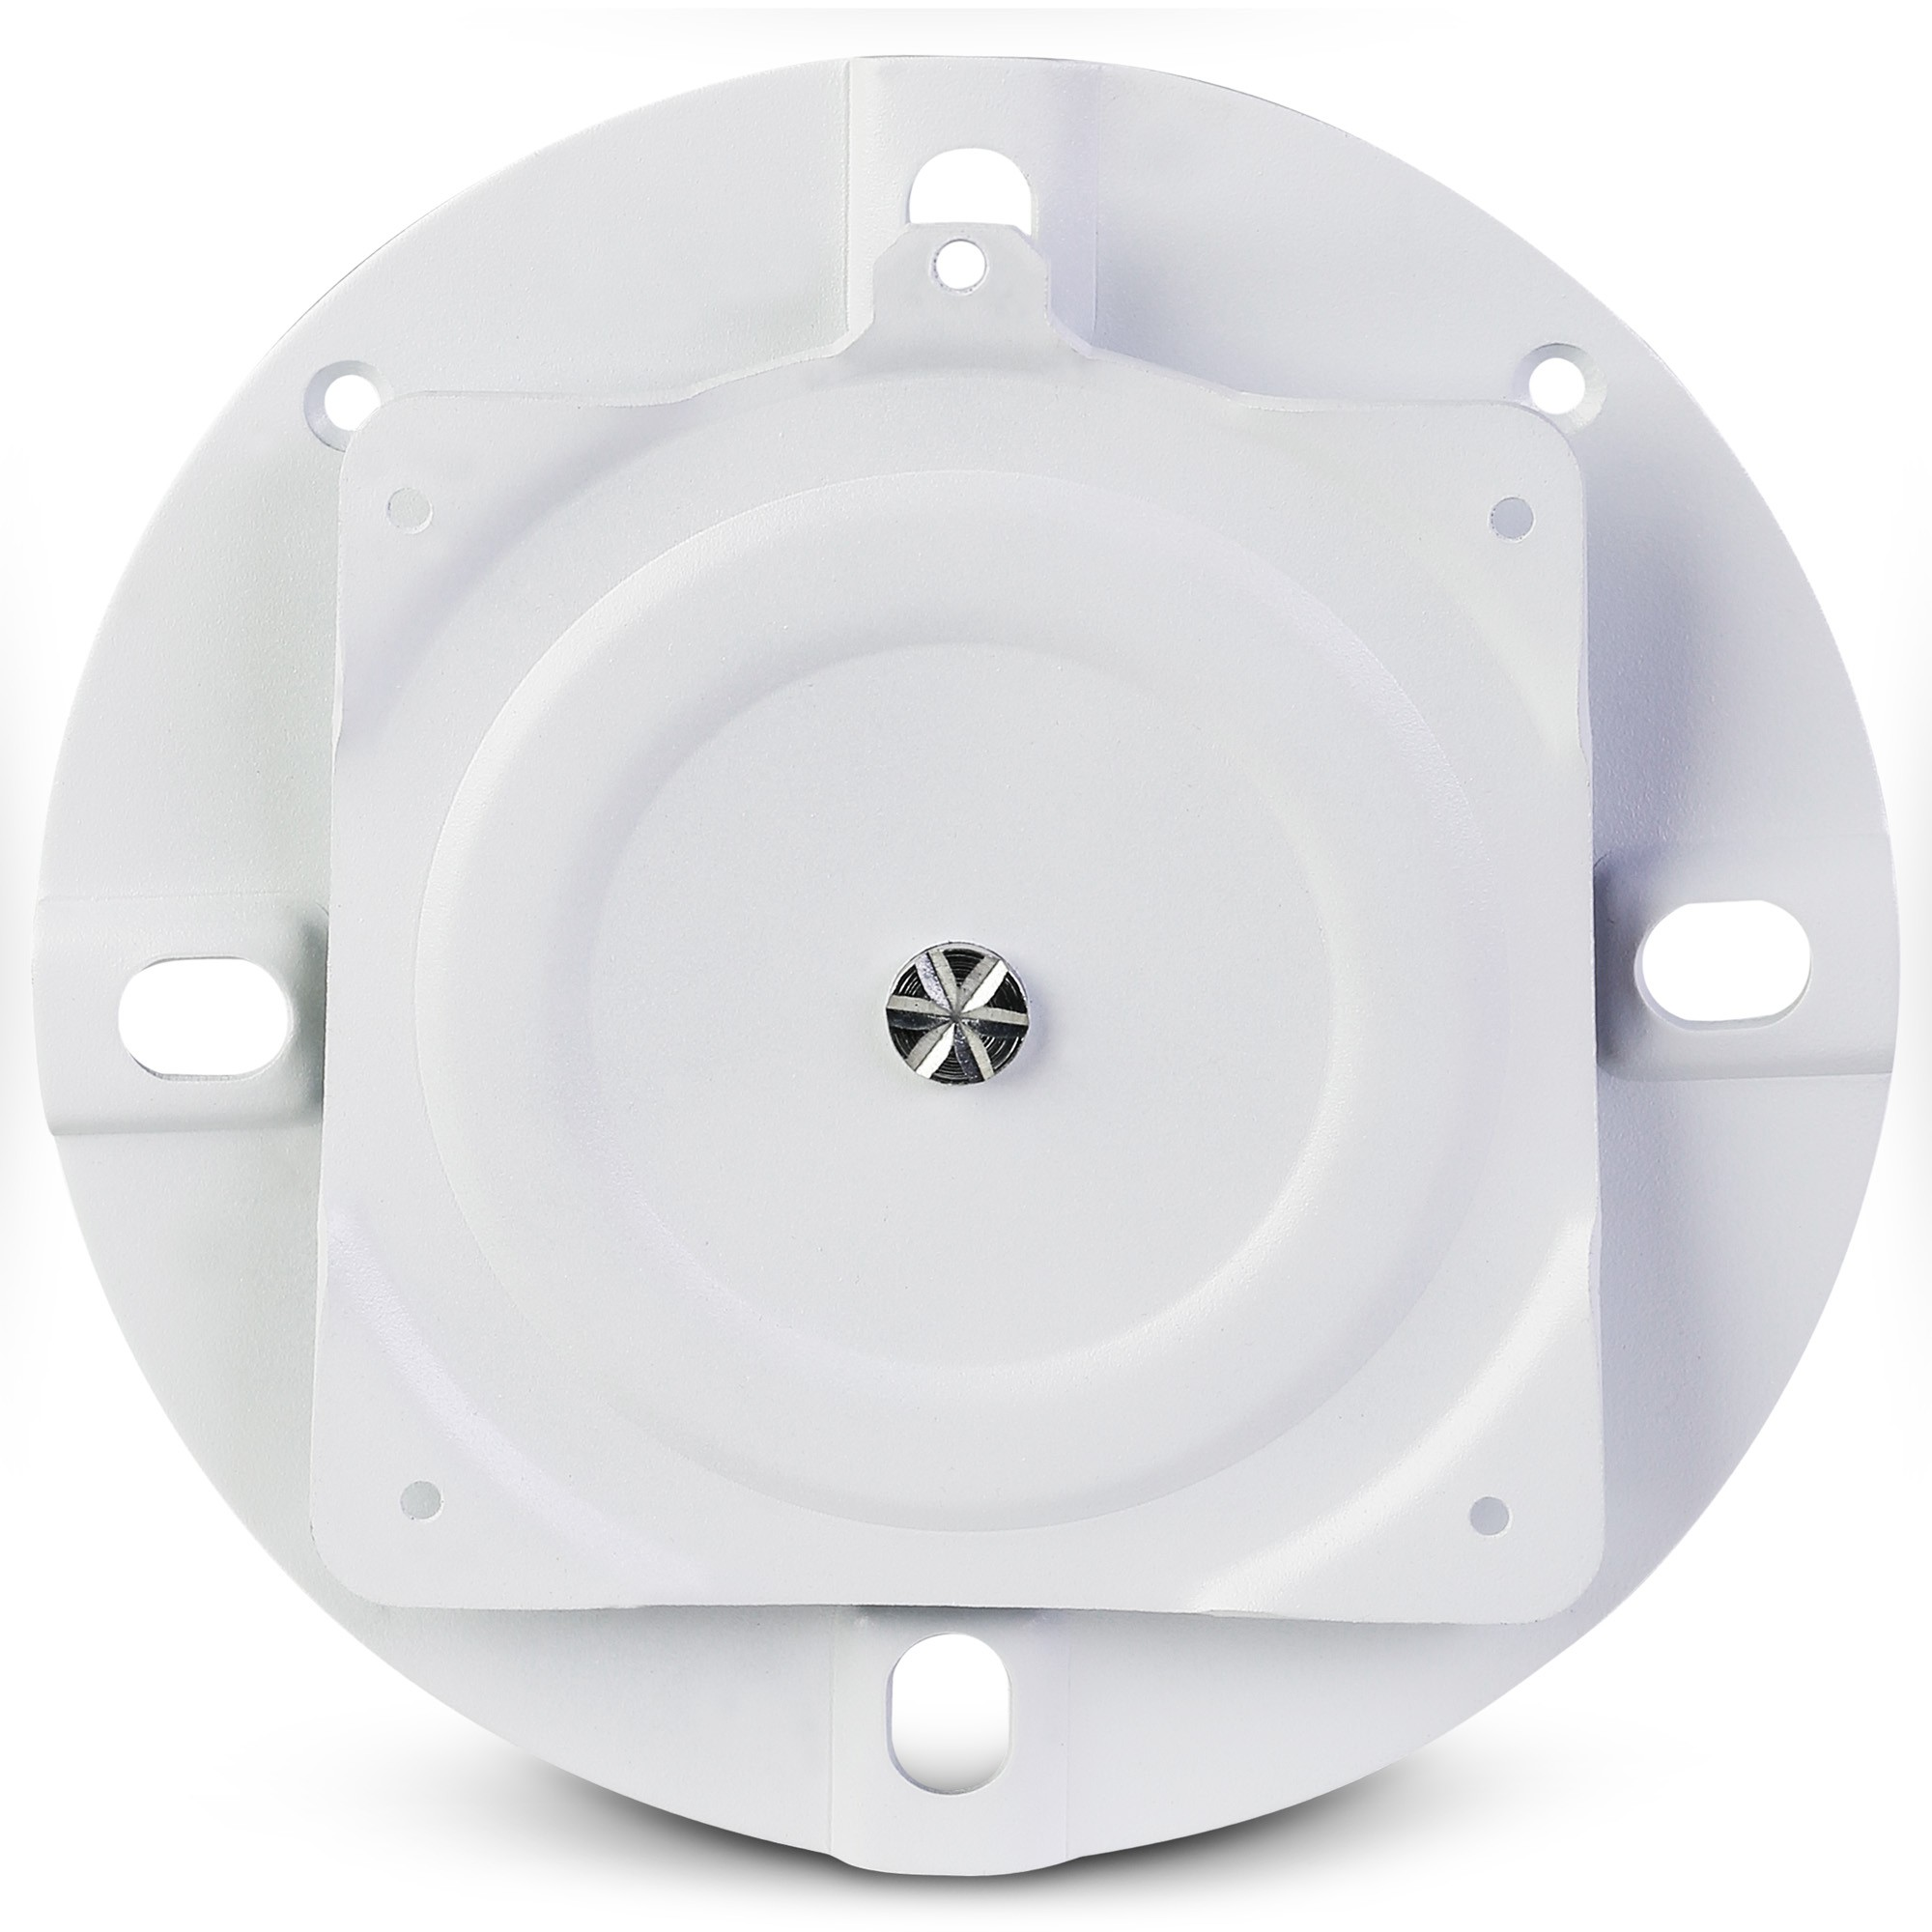 CURV 500 CMB W Ceiling mounting bracket for CURV 500® satellites white